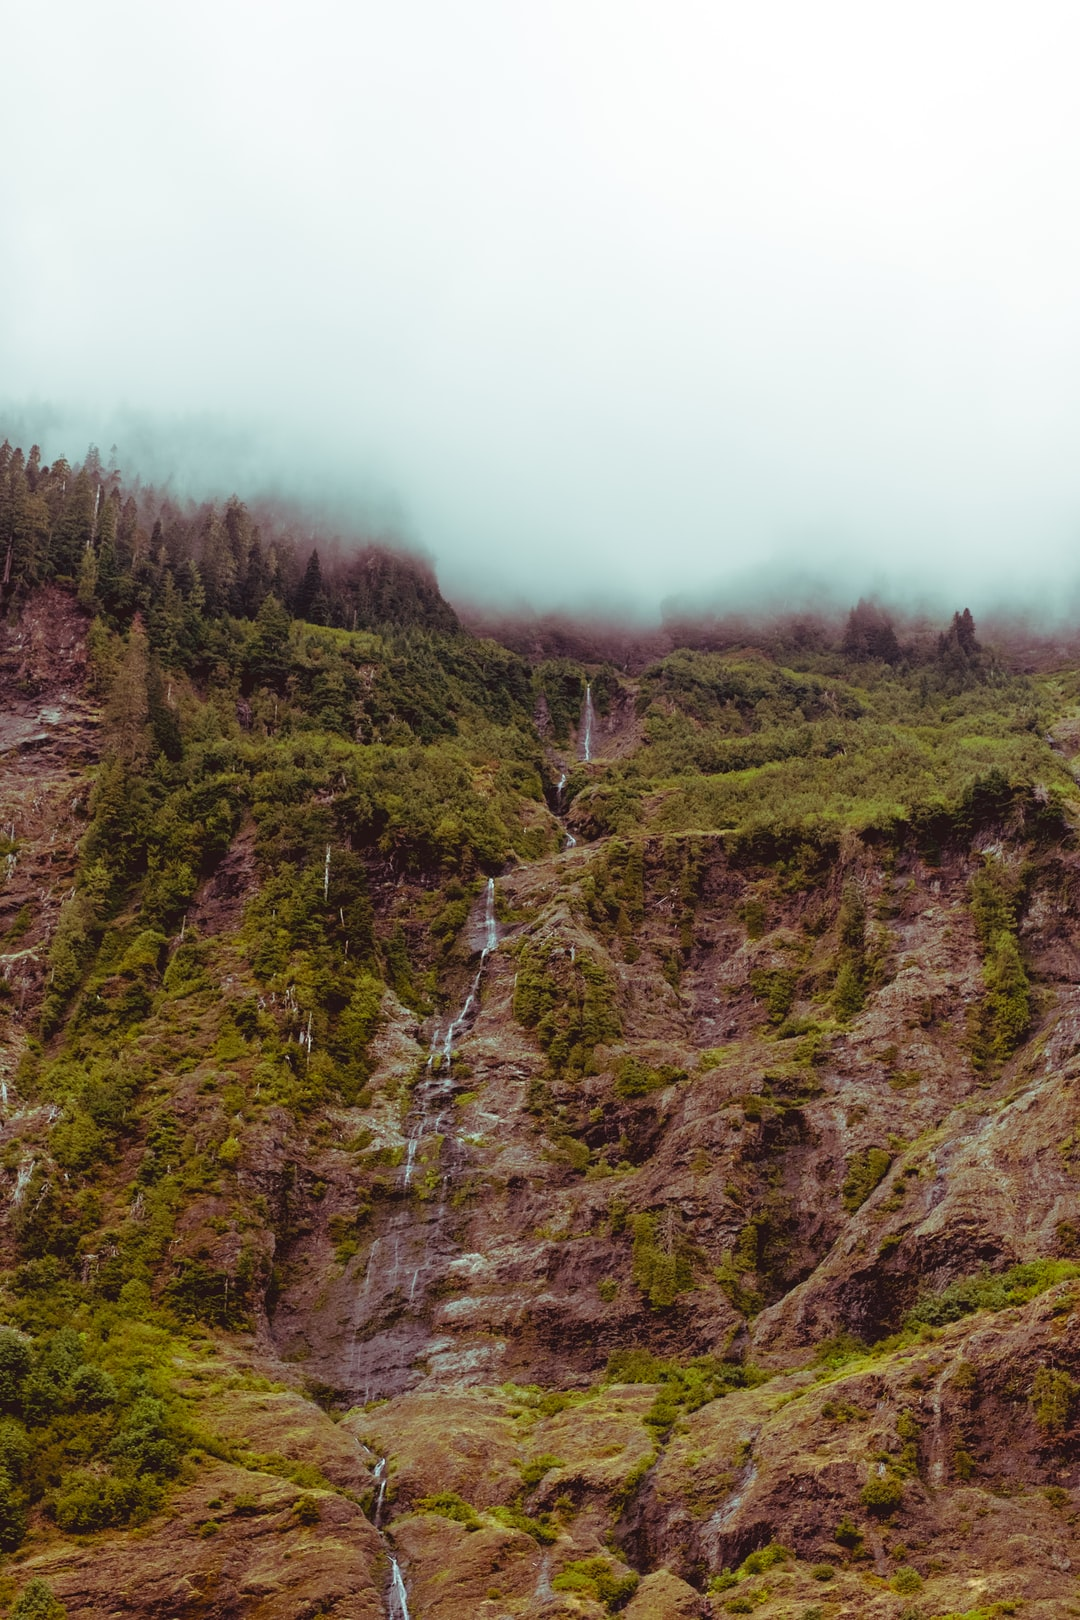 After two days of hiking, we emerged into an enchanted valley, where the clouds hung so low, you couldn't see where the earth ended and the sky began. The waterfalls that trickled off both walls of the valley's tunnel seemed to come from the heavens.